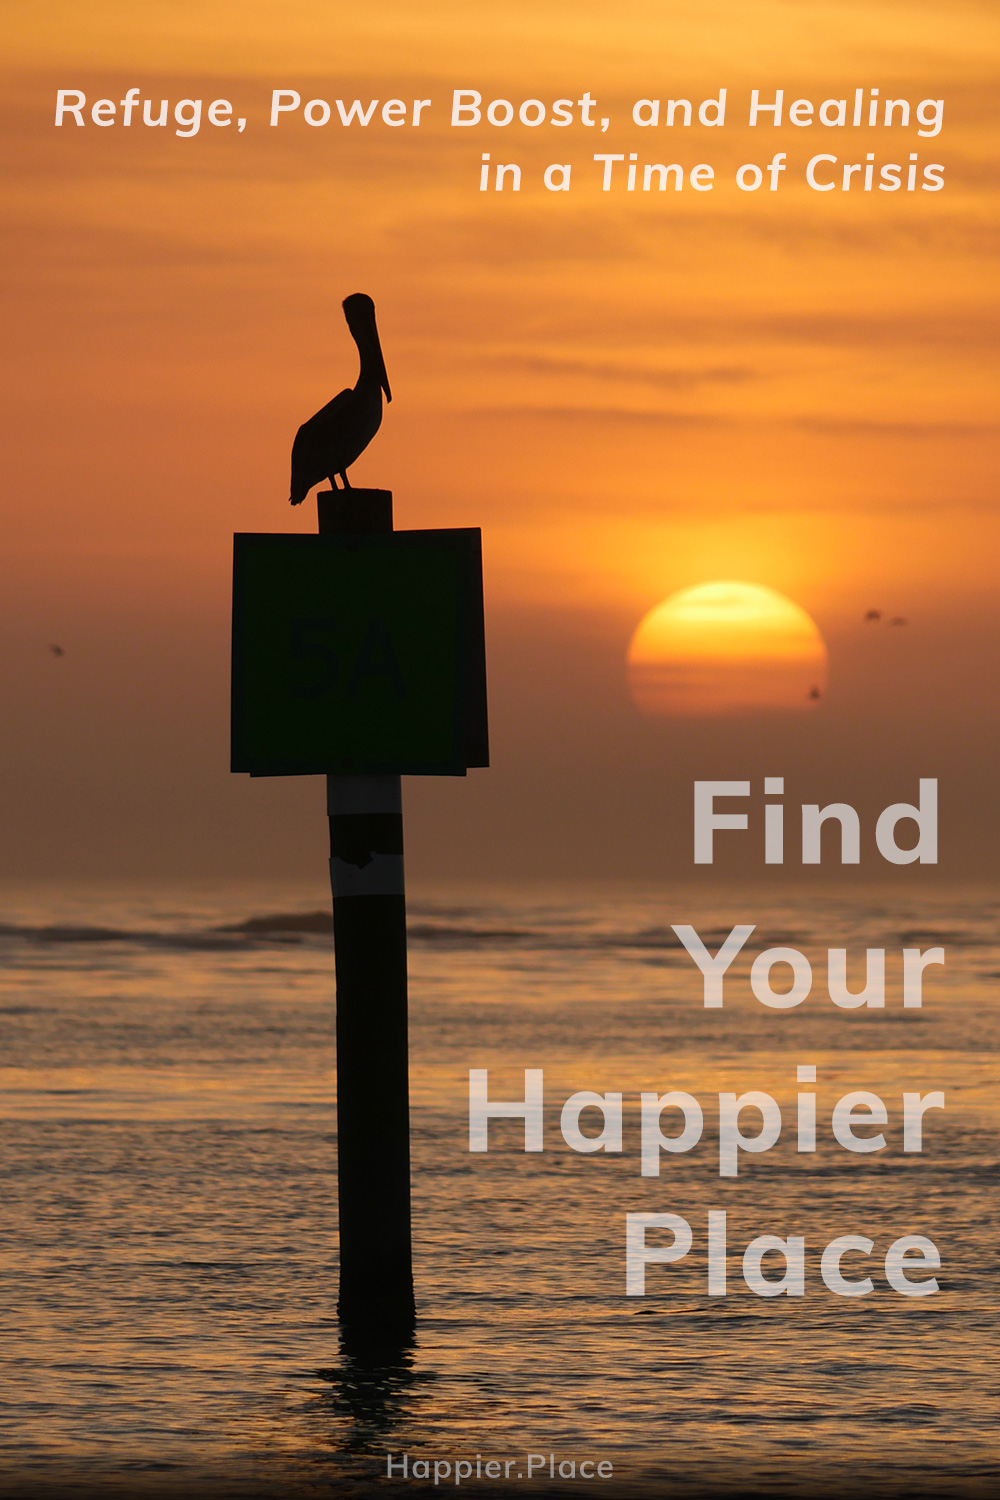 Refuge, Power Boost, and Healing in a Time of Crisis: Visit Your Happier Place